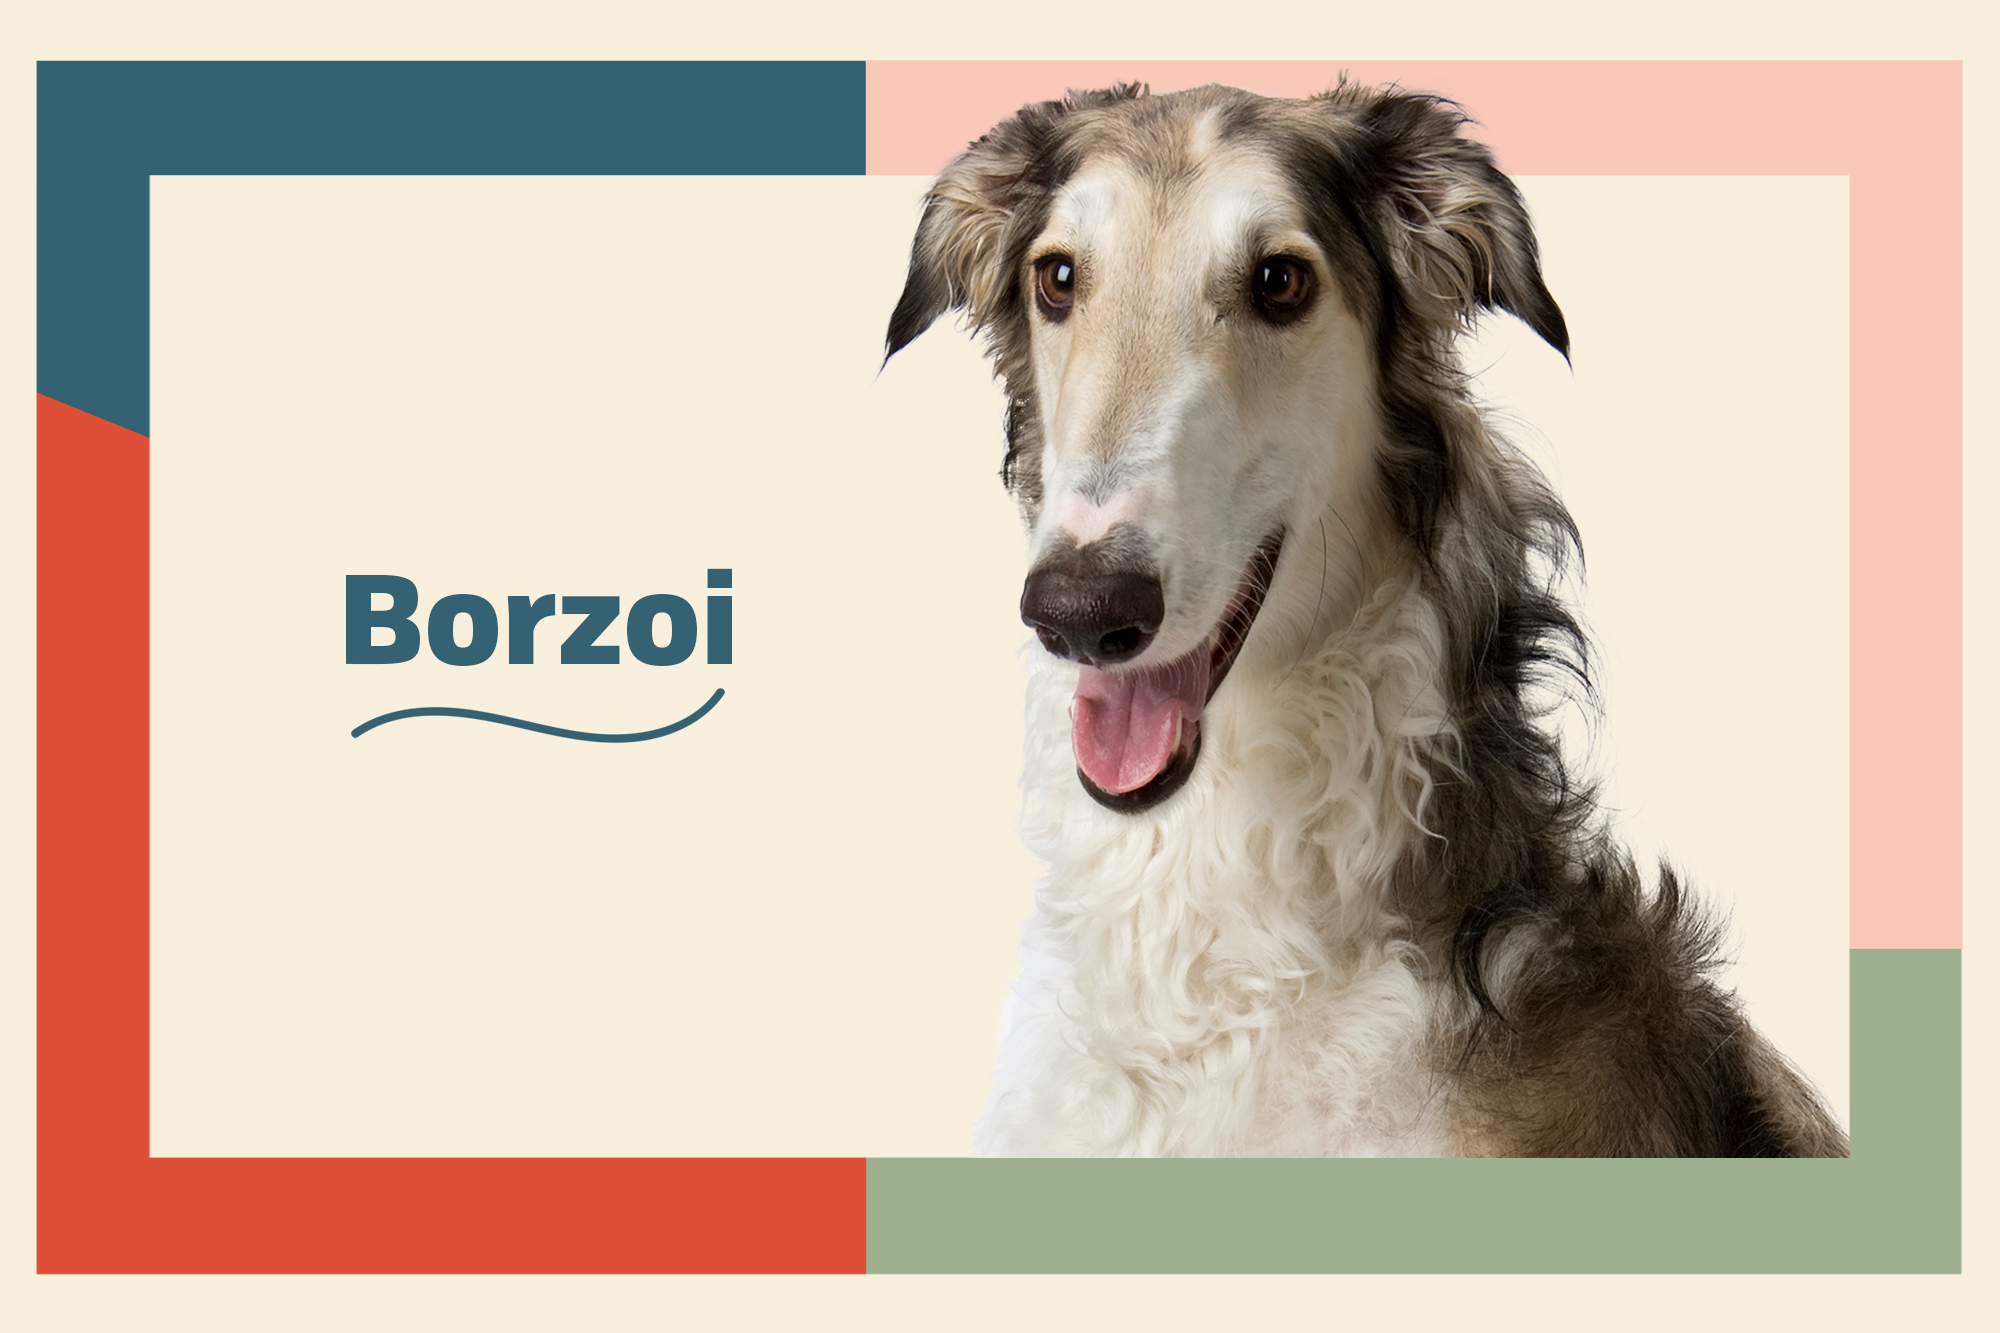 Borzoi Breed Photo